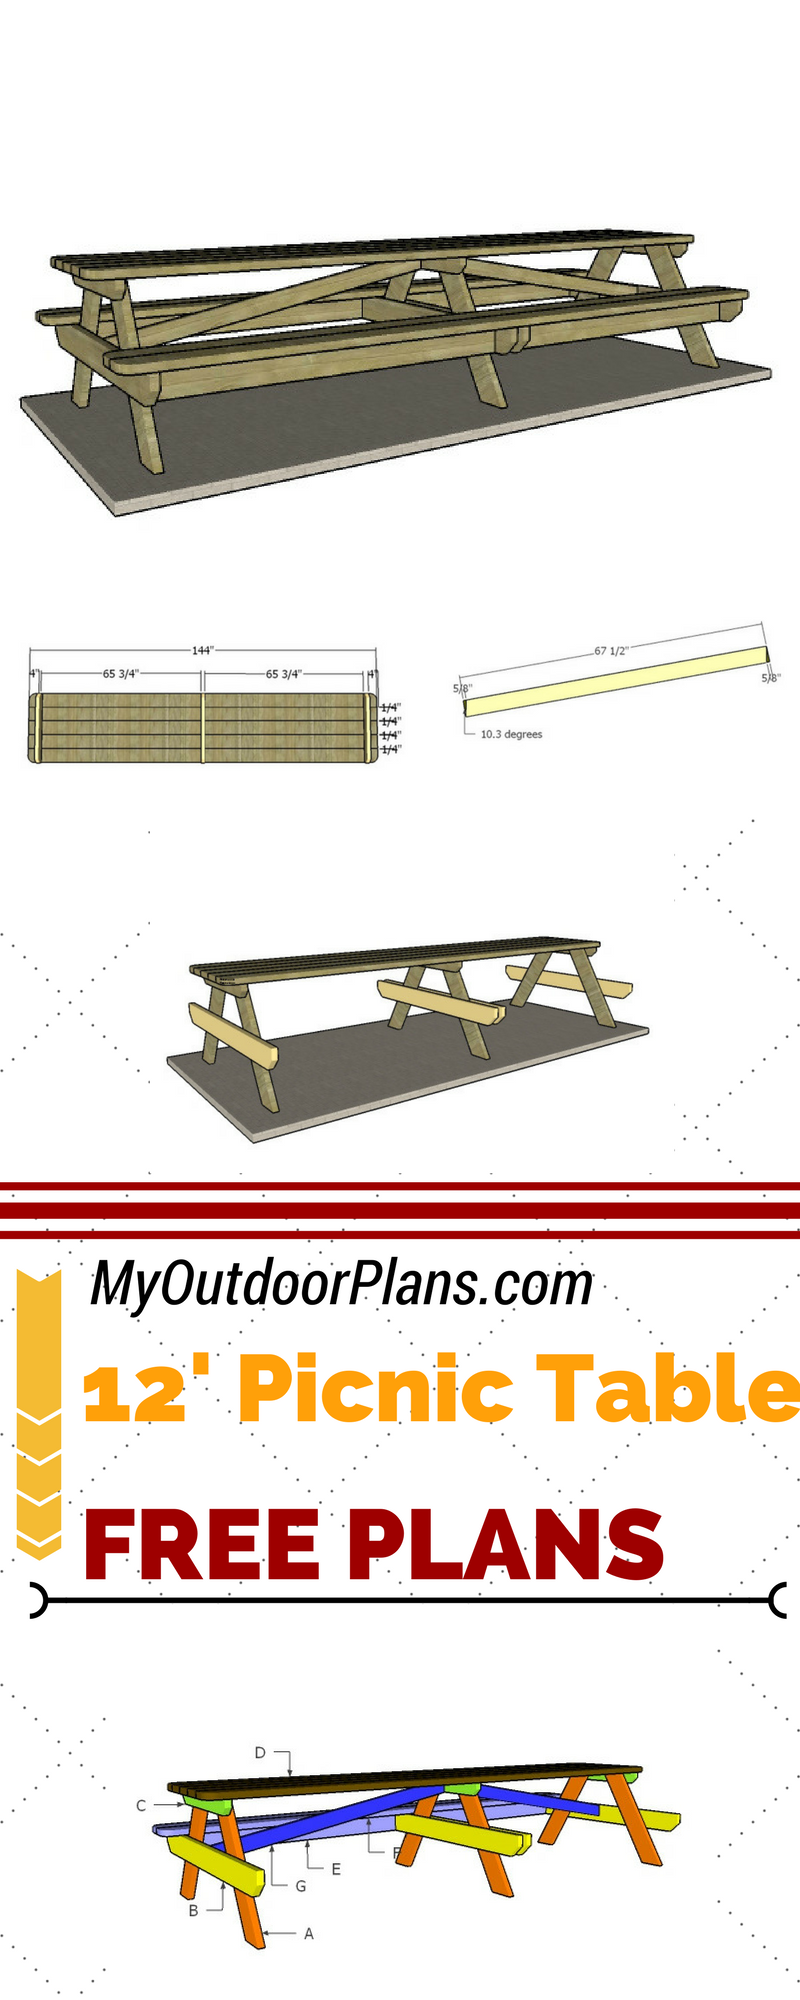 Check Out Free Plans For Building A 12 Foot Picnic Table Learn How To Build A Large Picnic Table S Woodworking Plans Free Picnic Table Plans Diy Picnic Table